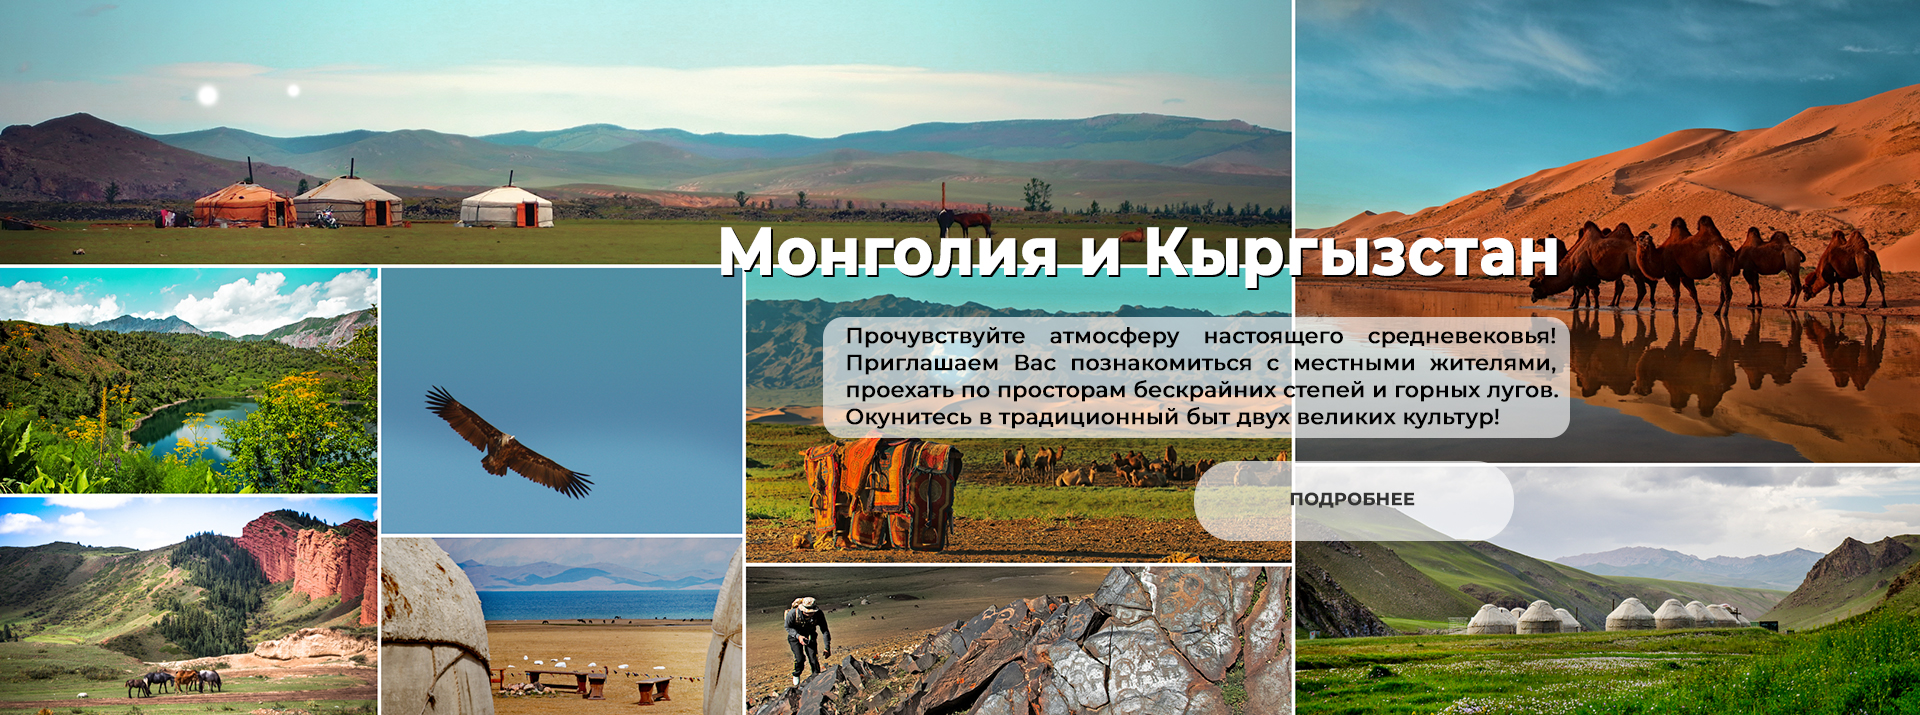 KG and Mongolia